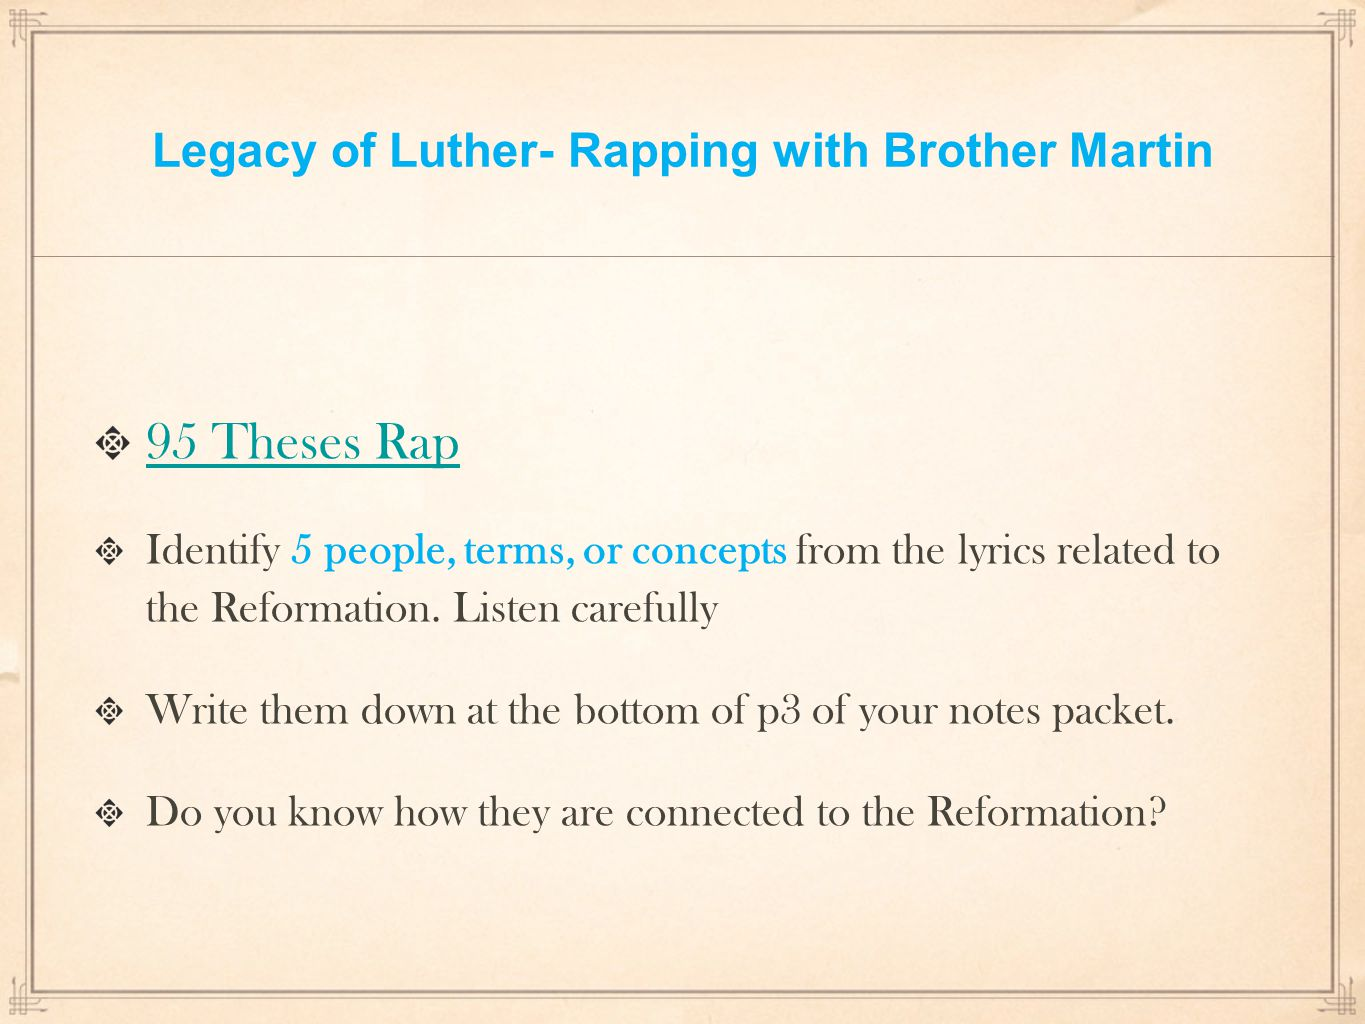 95 theses summary